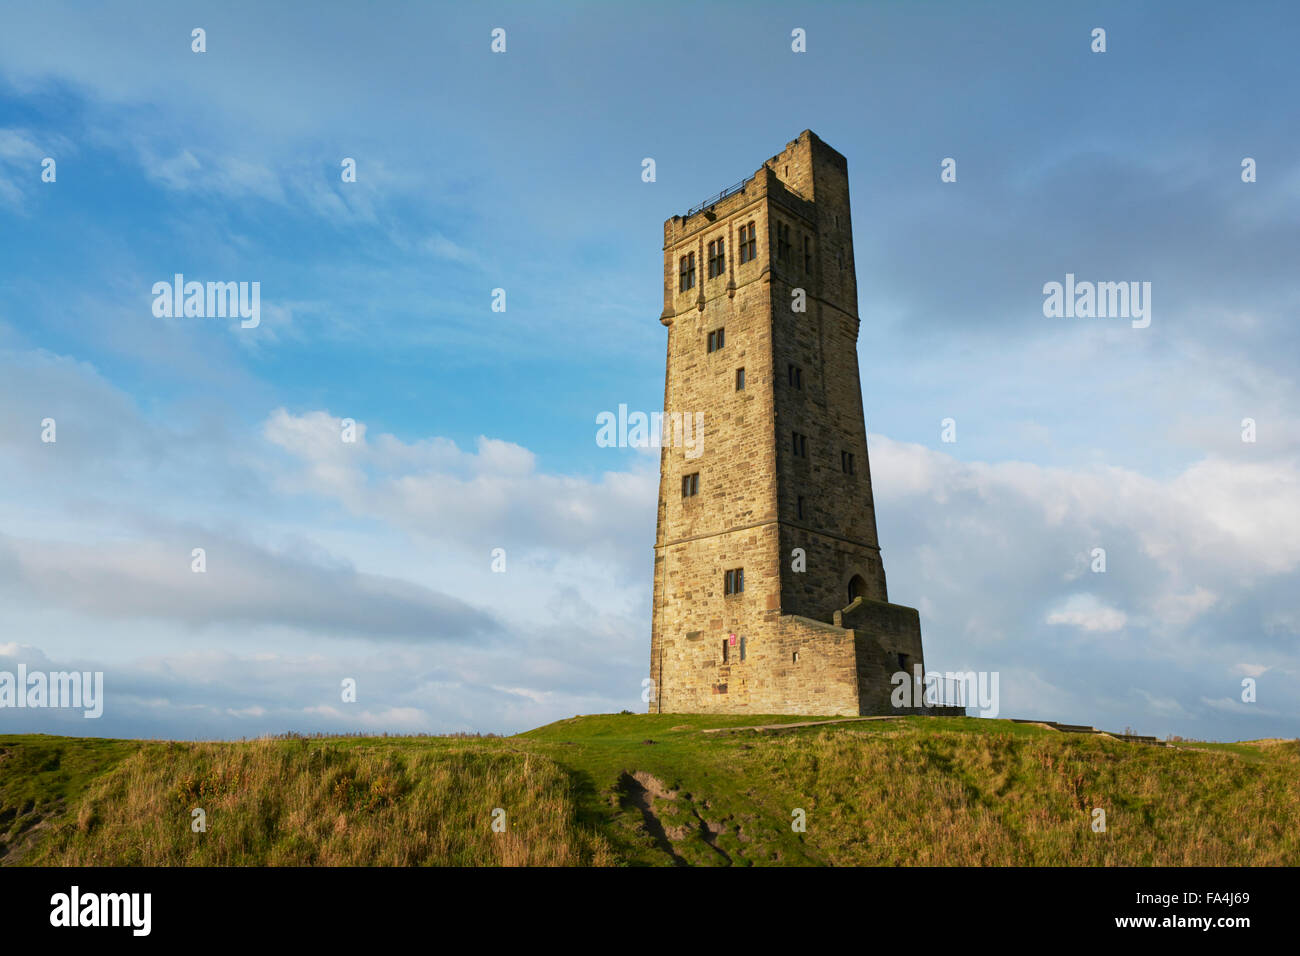 Victoria Tower at Castle Hill Huddersfield, Yorkshire, England, UK - Stock Image